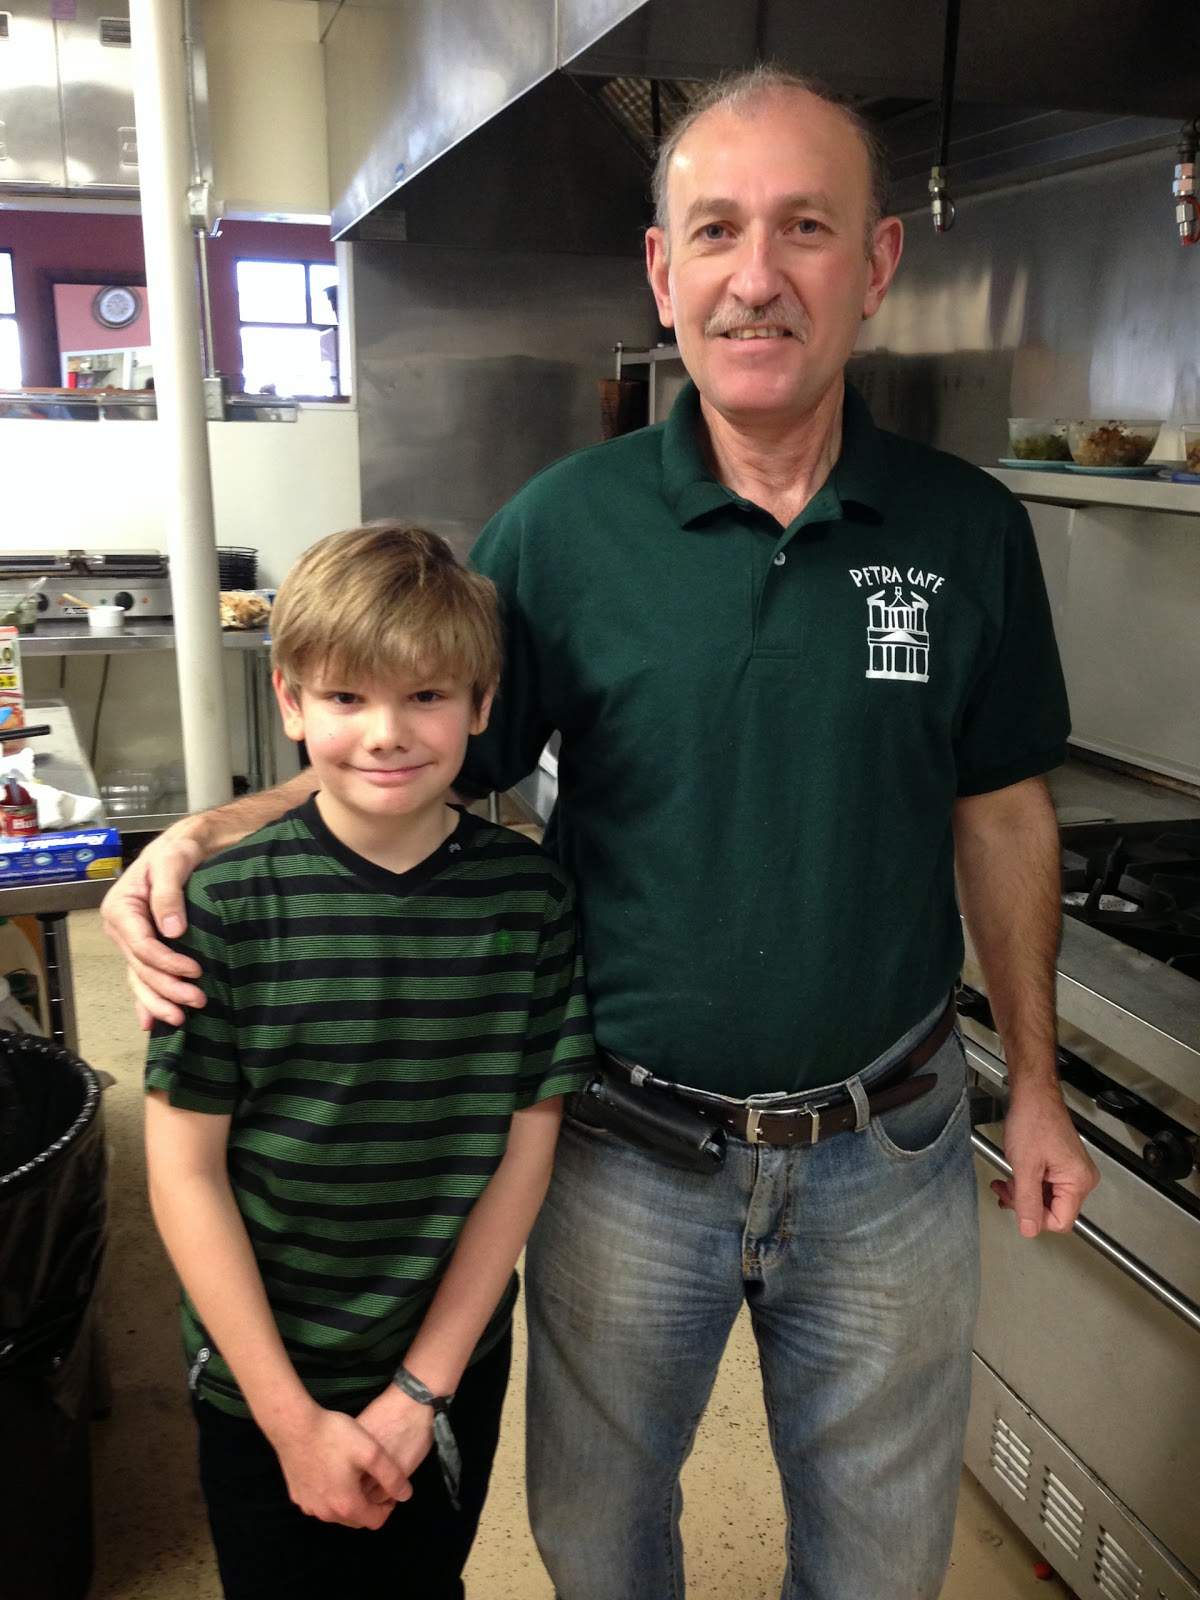 Logan Guleff at Petra Cafe Master Chef Jr 2 USA